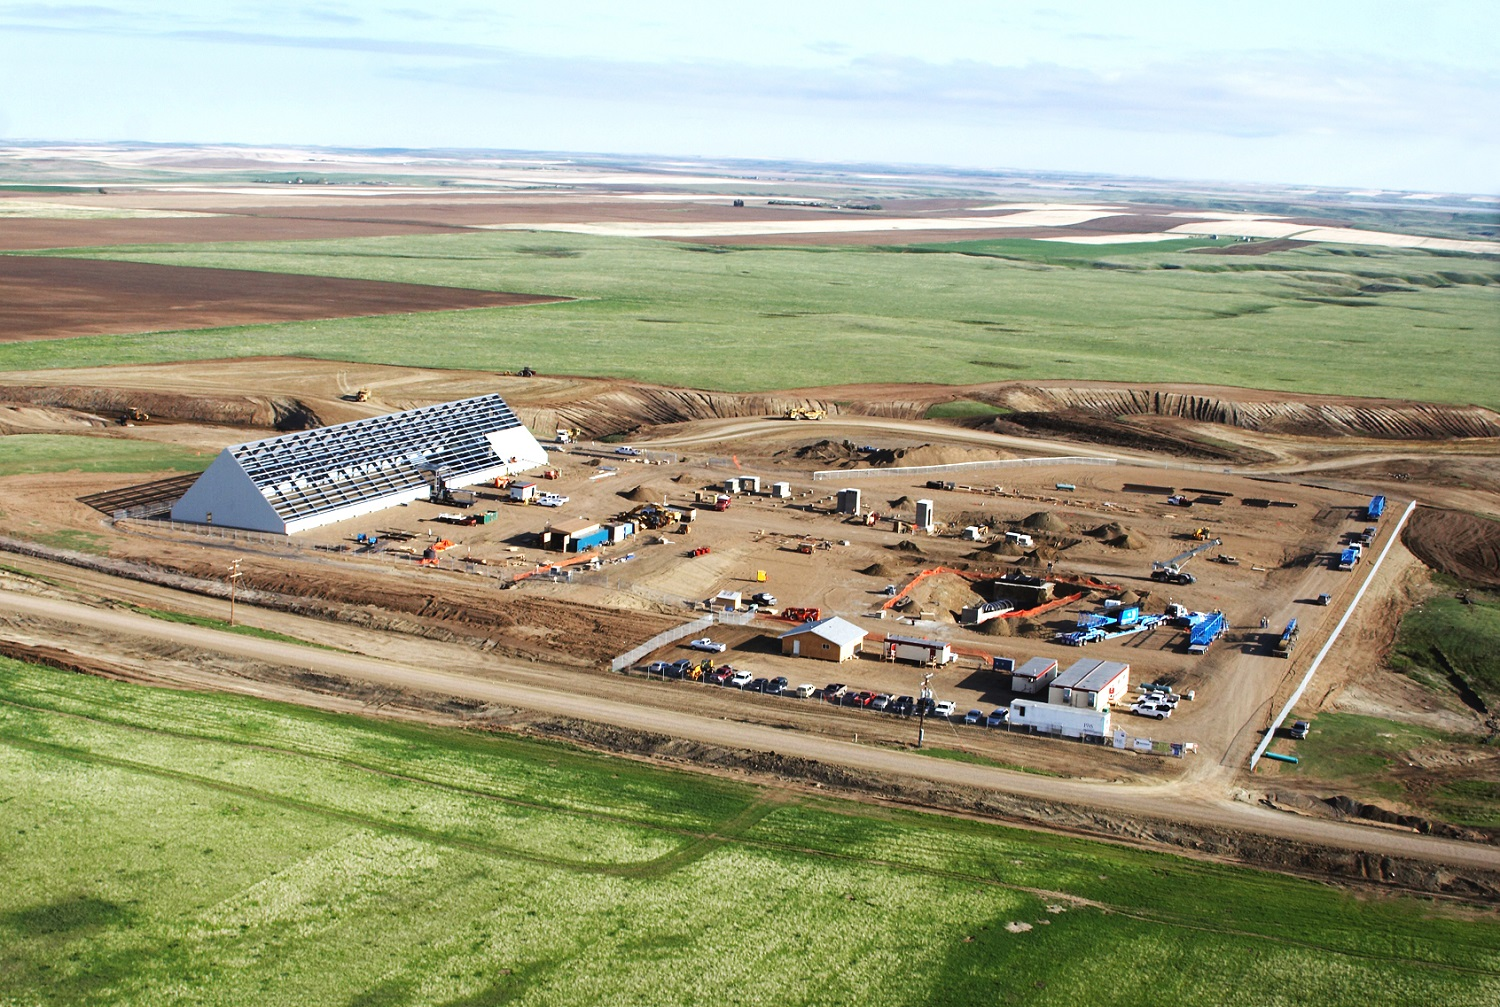 aerial Metakaolin processing facility Design and installation of all foundations, concrete, structural steel and processing buildings whitemud Ag-industrial Bulk material handling Mining Wood Mountain Crusher Ore handling Rotary dryer Kiln Cooler Baghouse Coal mill Ore